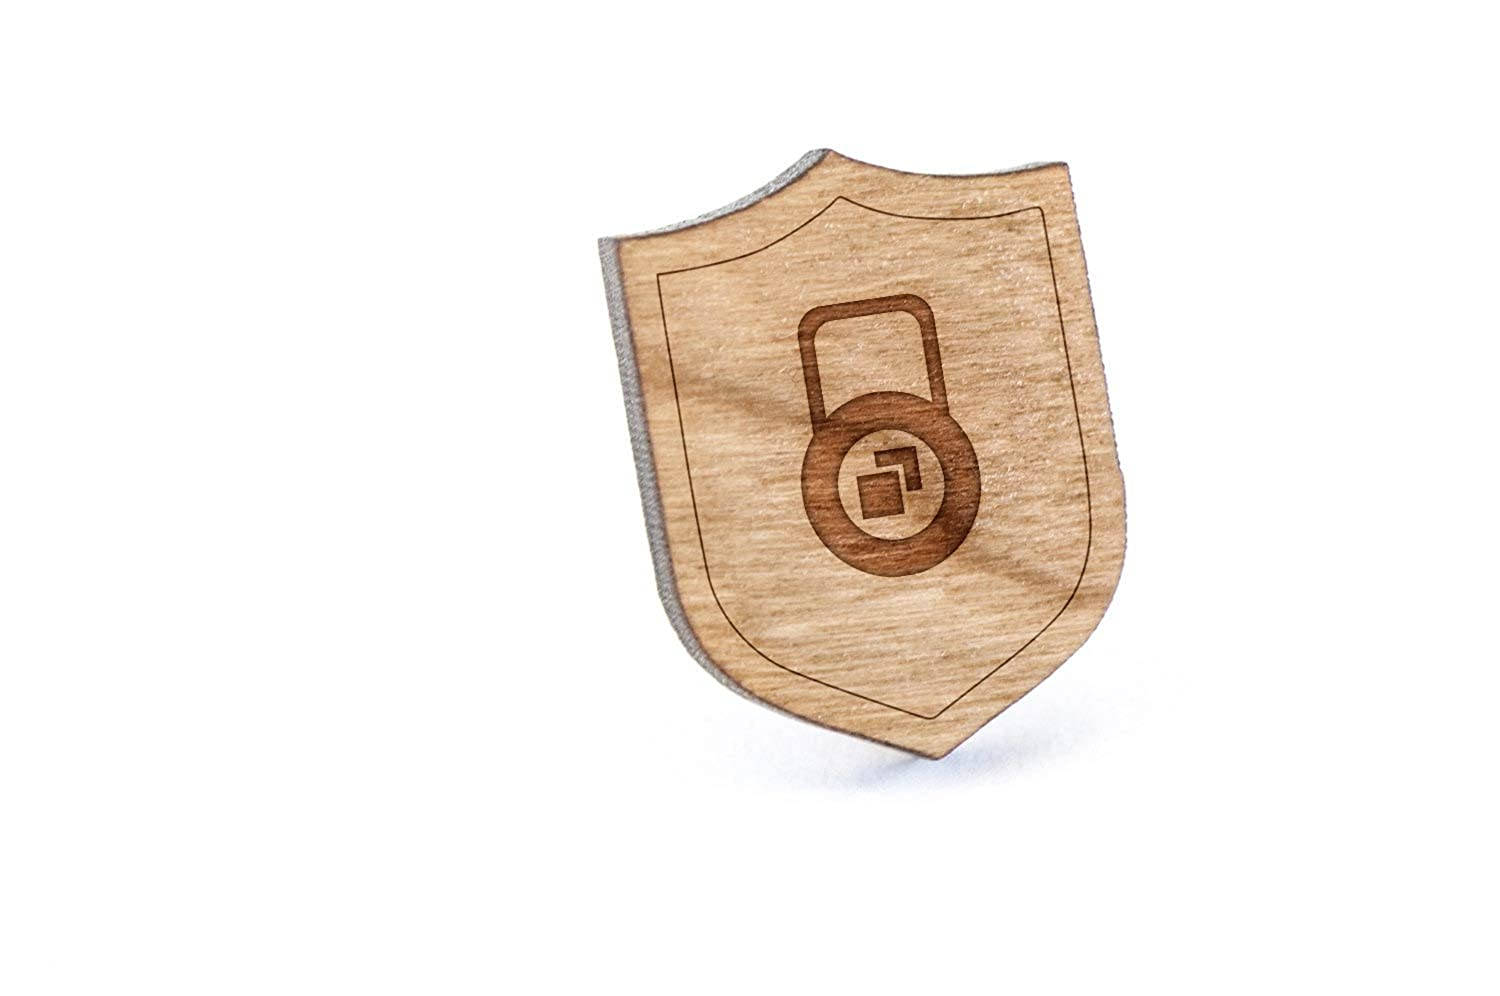 Cube Lock Lapel Pin, Wooden Pin And Tie Tack | Rustic And Minimalistic Groomsmen Gifts And Wedding Accessories